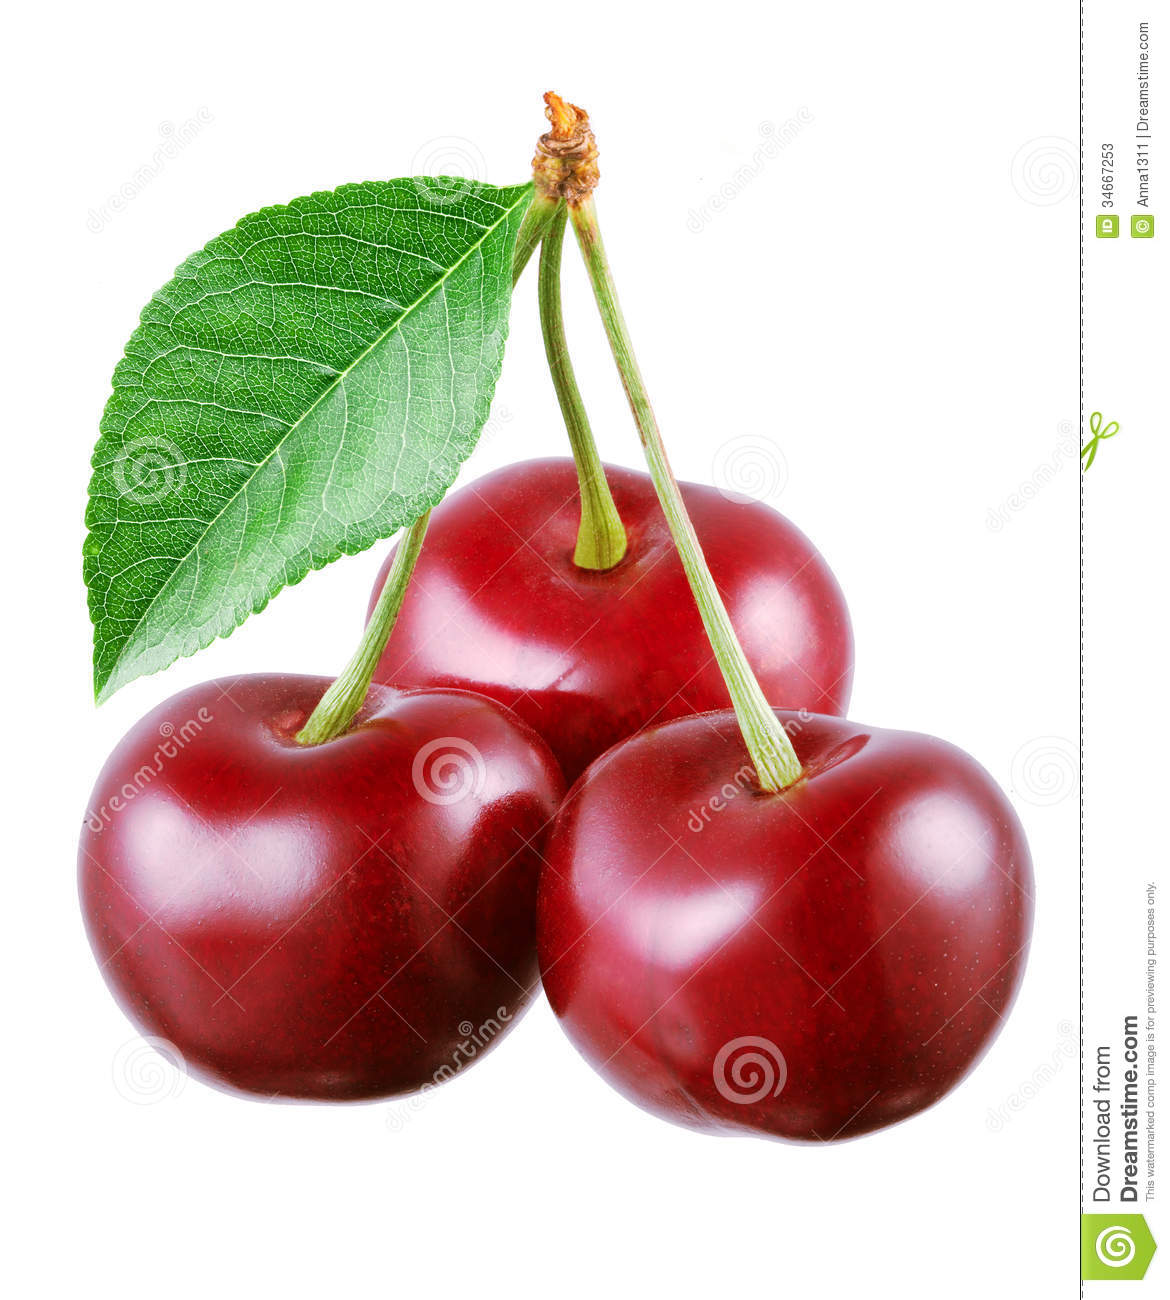 Three cherries with leaf isolated on white.